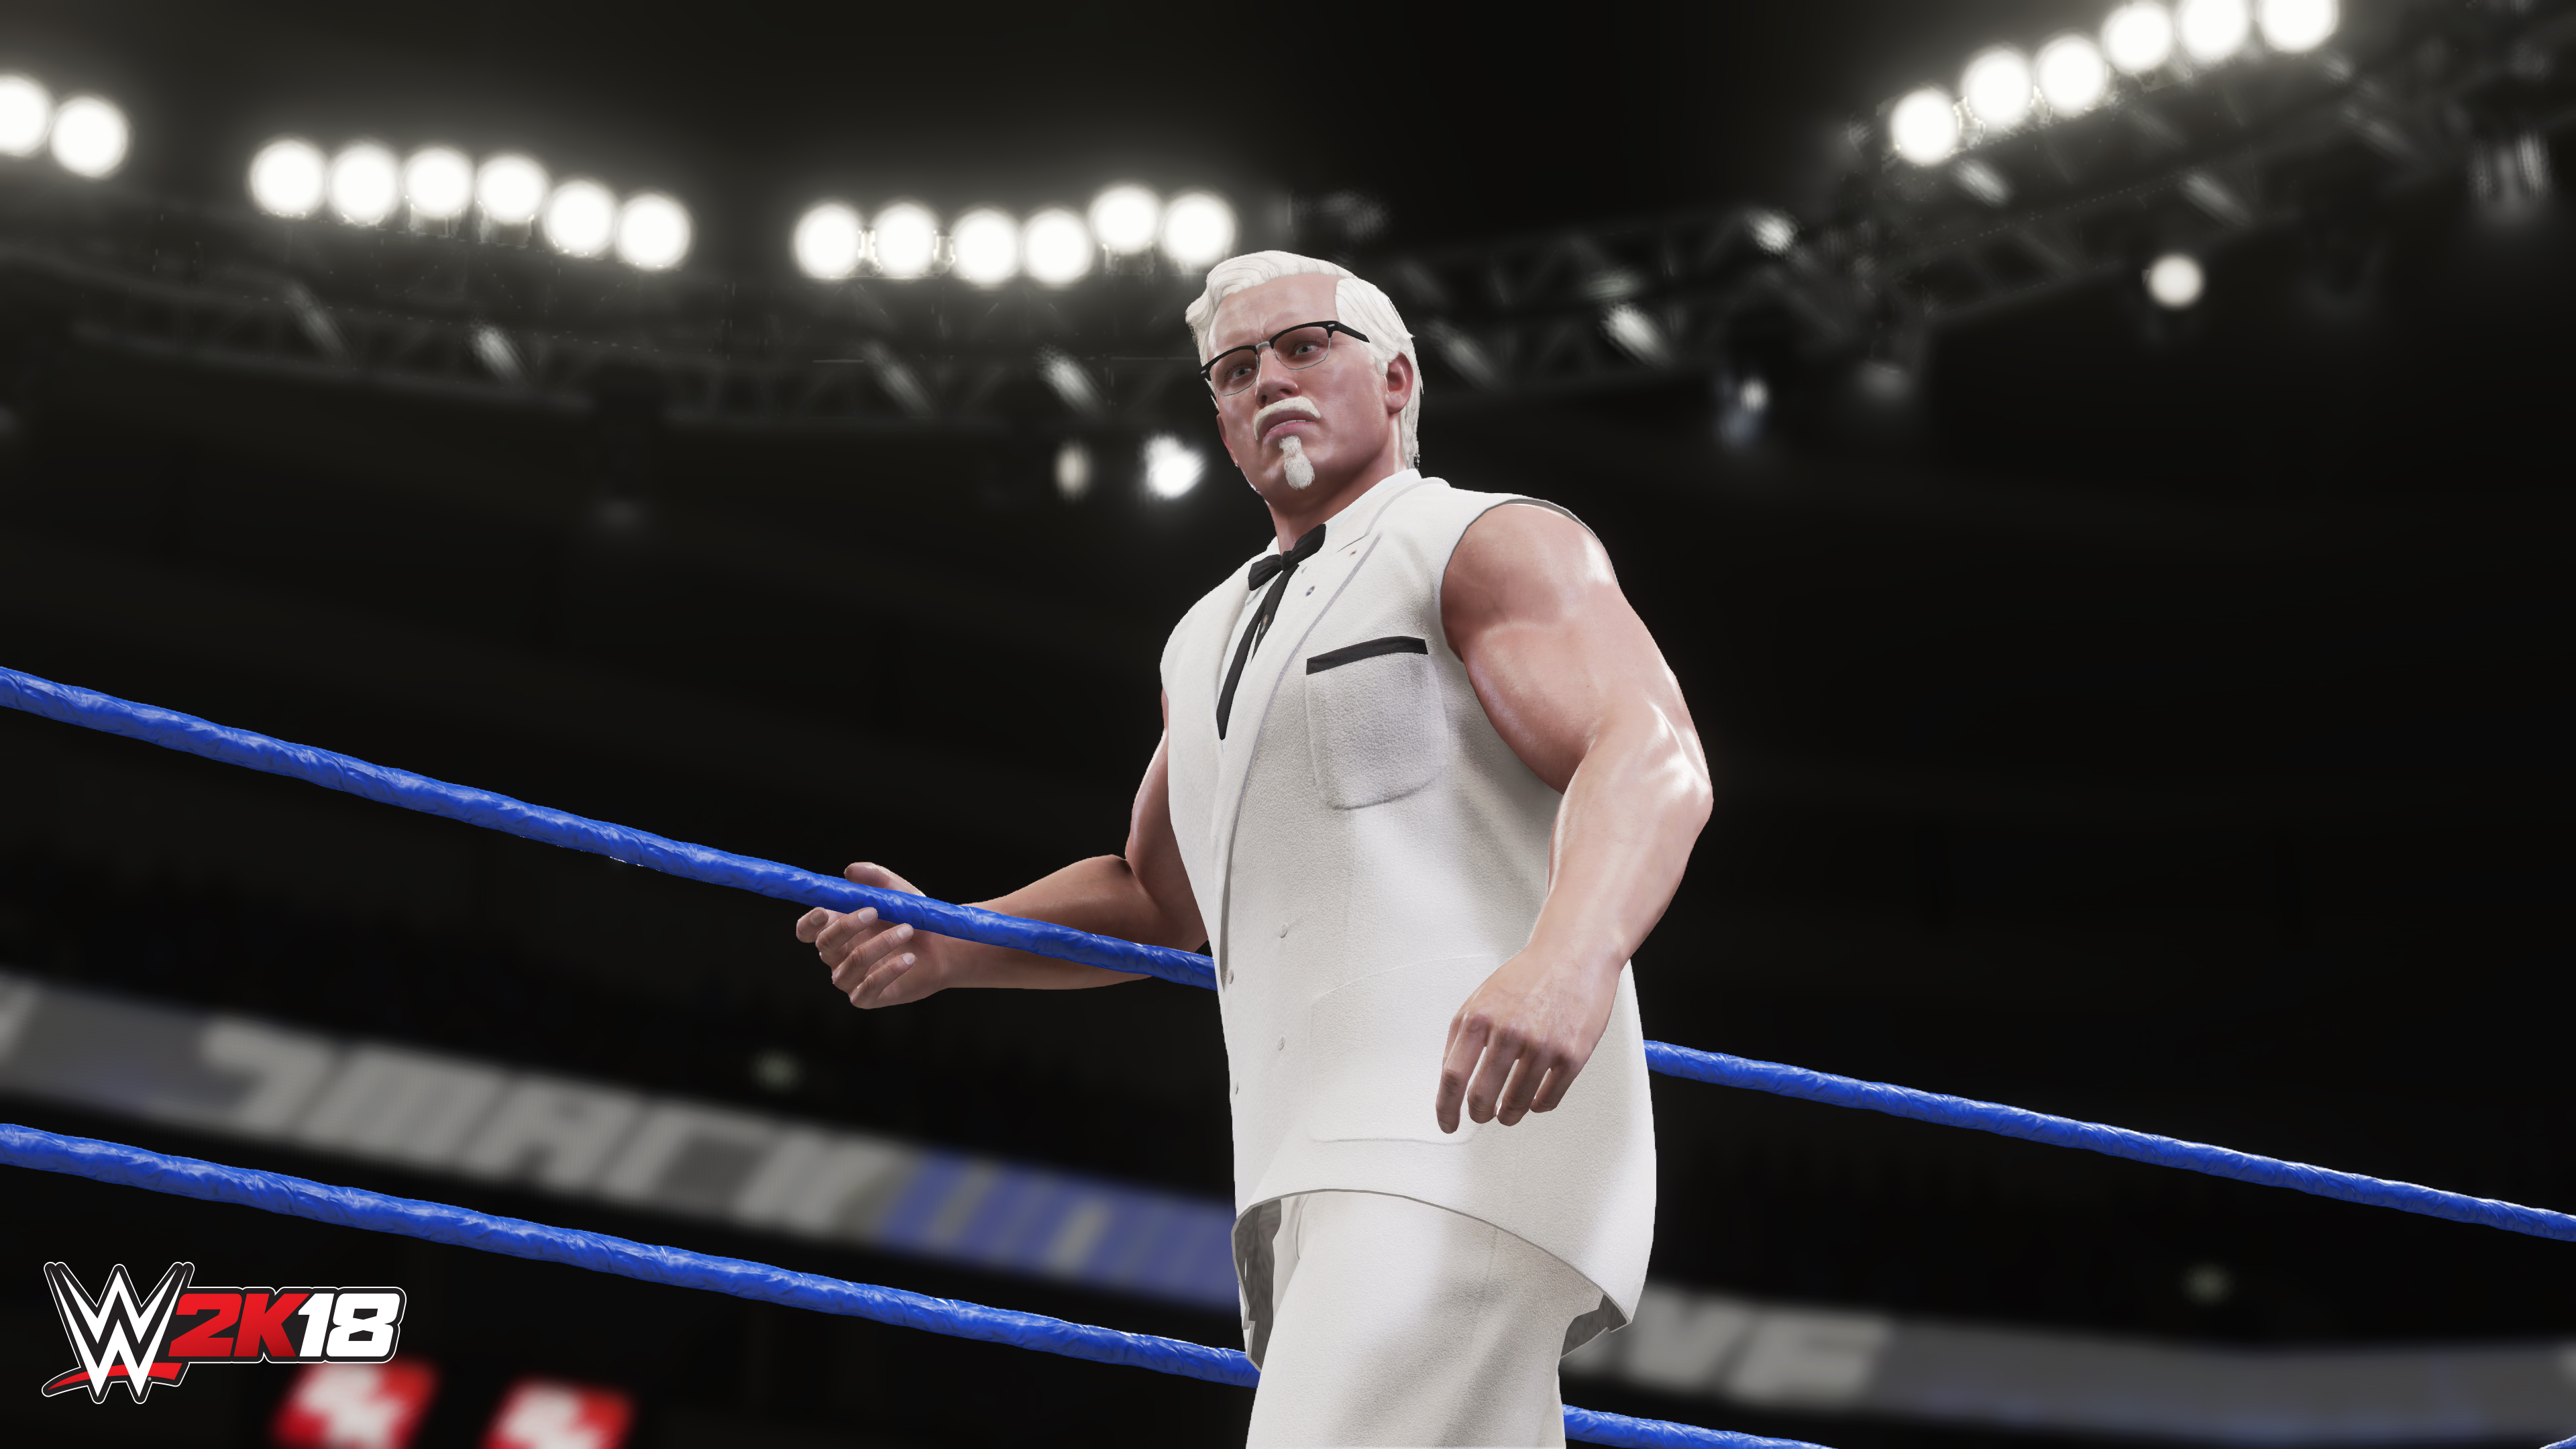 WWE 2K18 Adds KFC's Colonel Sanders to the Roster